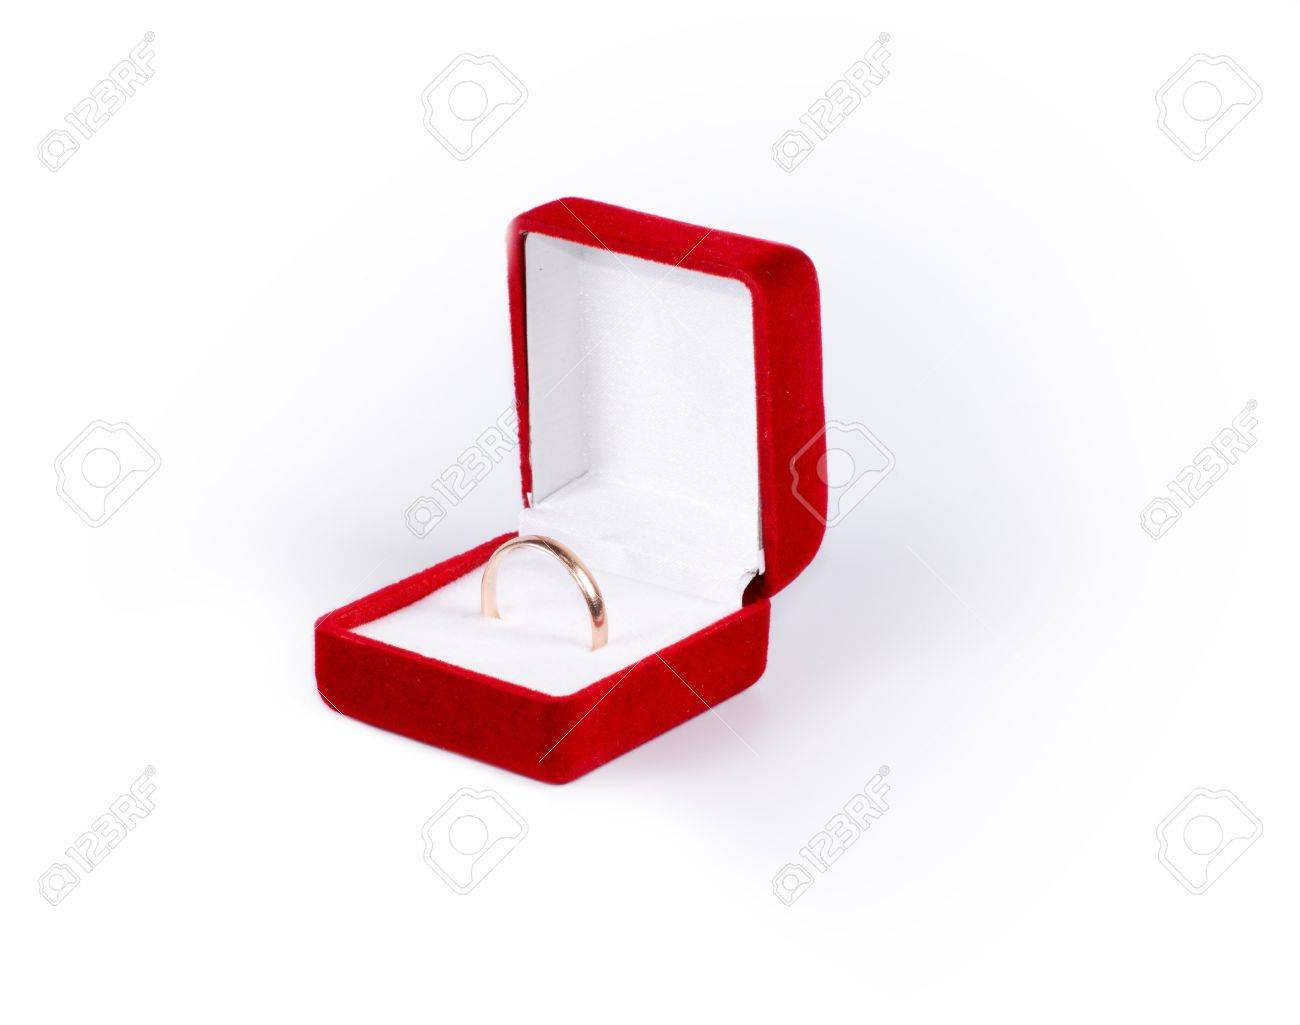 Simple gold band or wedding ring displayed in an open red square jewelery box isolated on white Stock Photo - 17856537